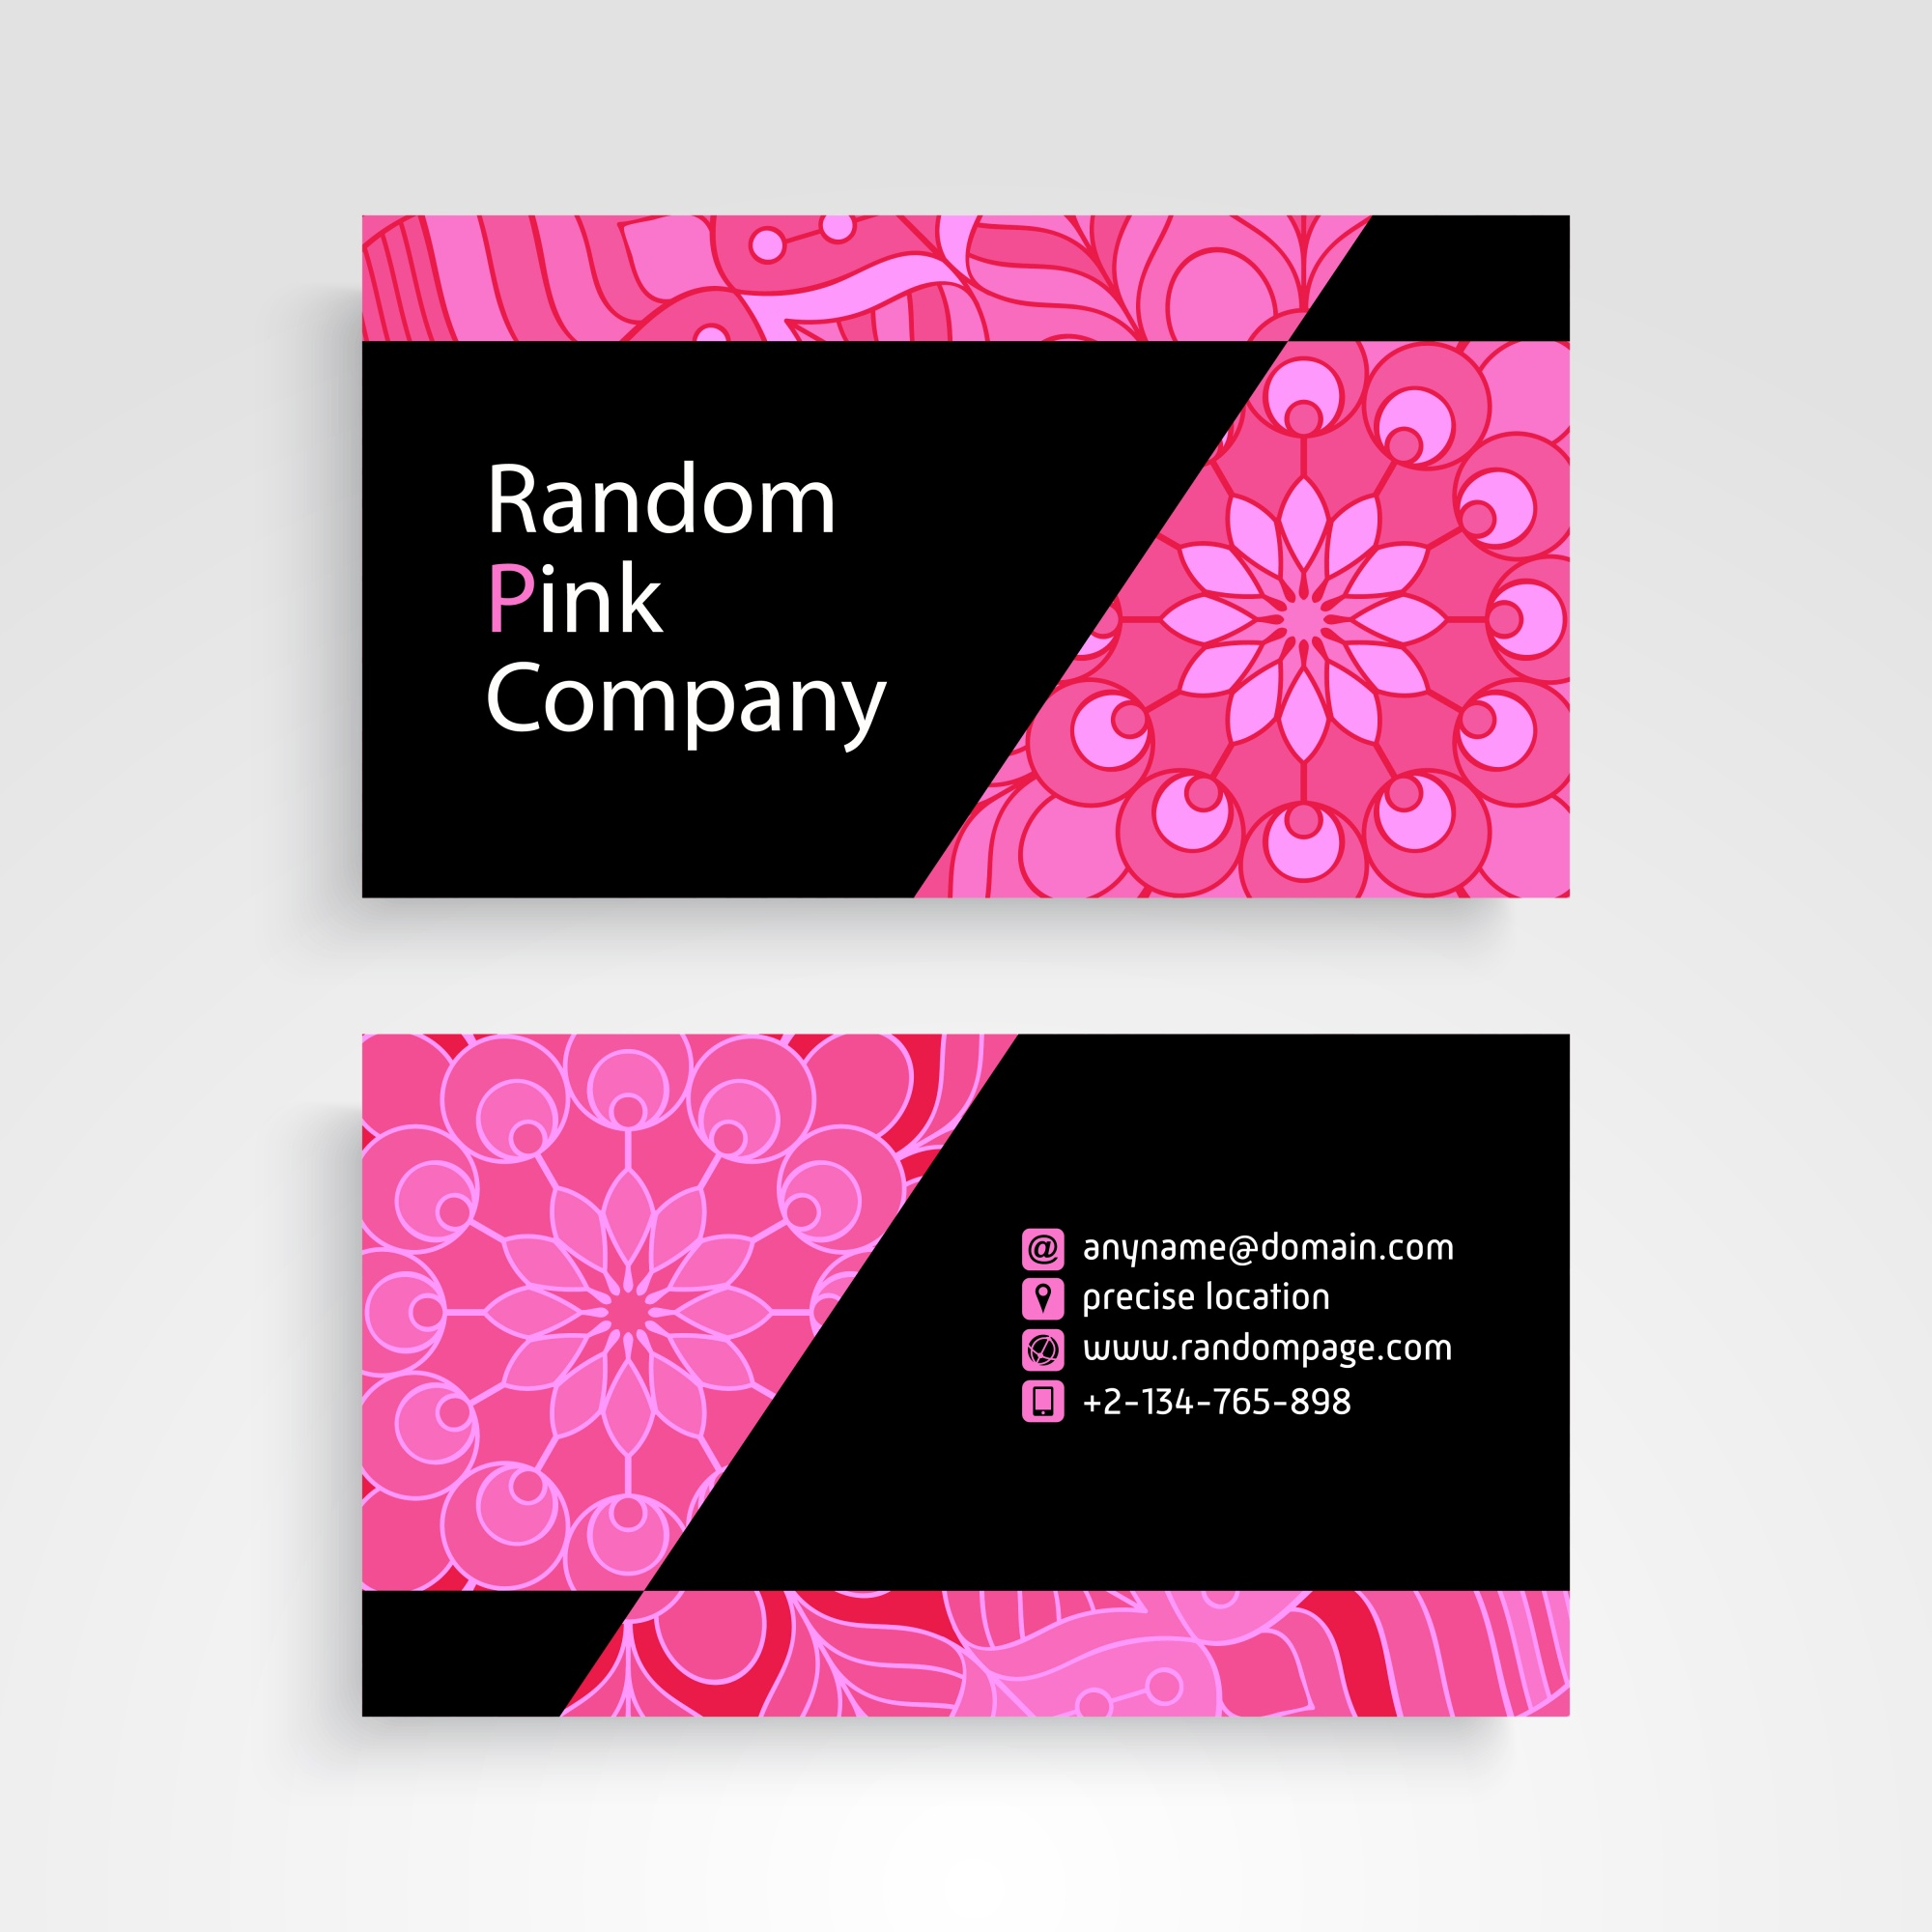 Start A Wedding Invitation Business Chatterzoom